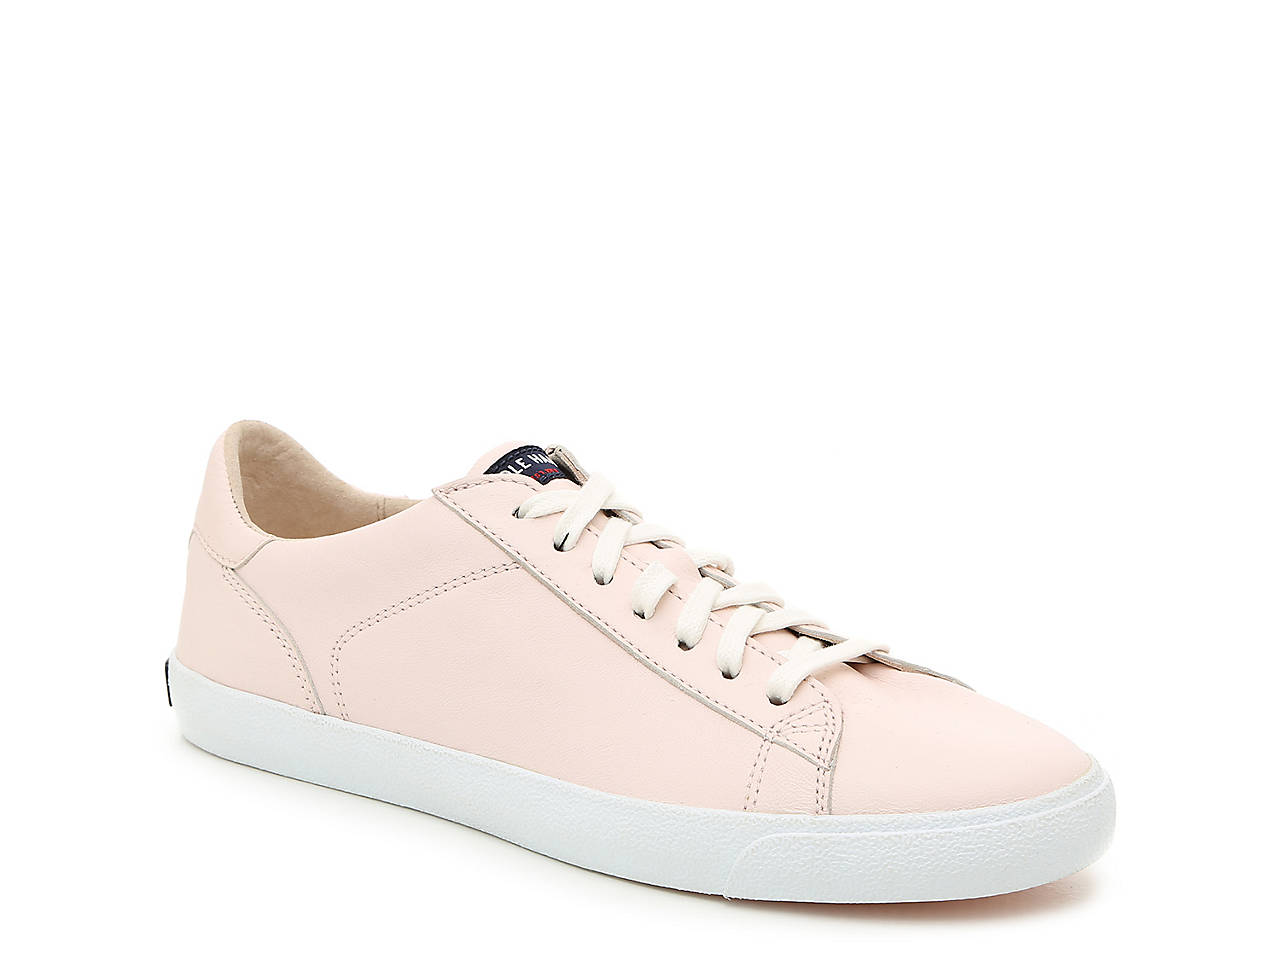 7f764e39312 Cole Haan Carrie Sneaker Women's Shoes | DSW